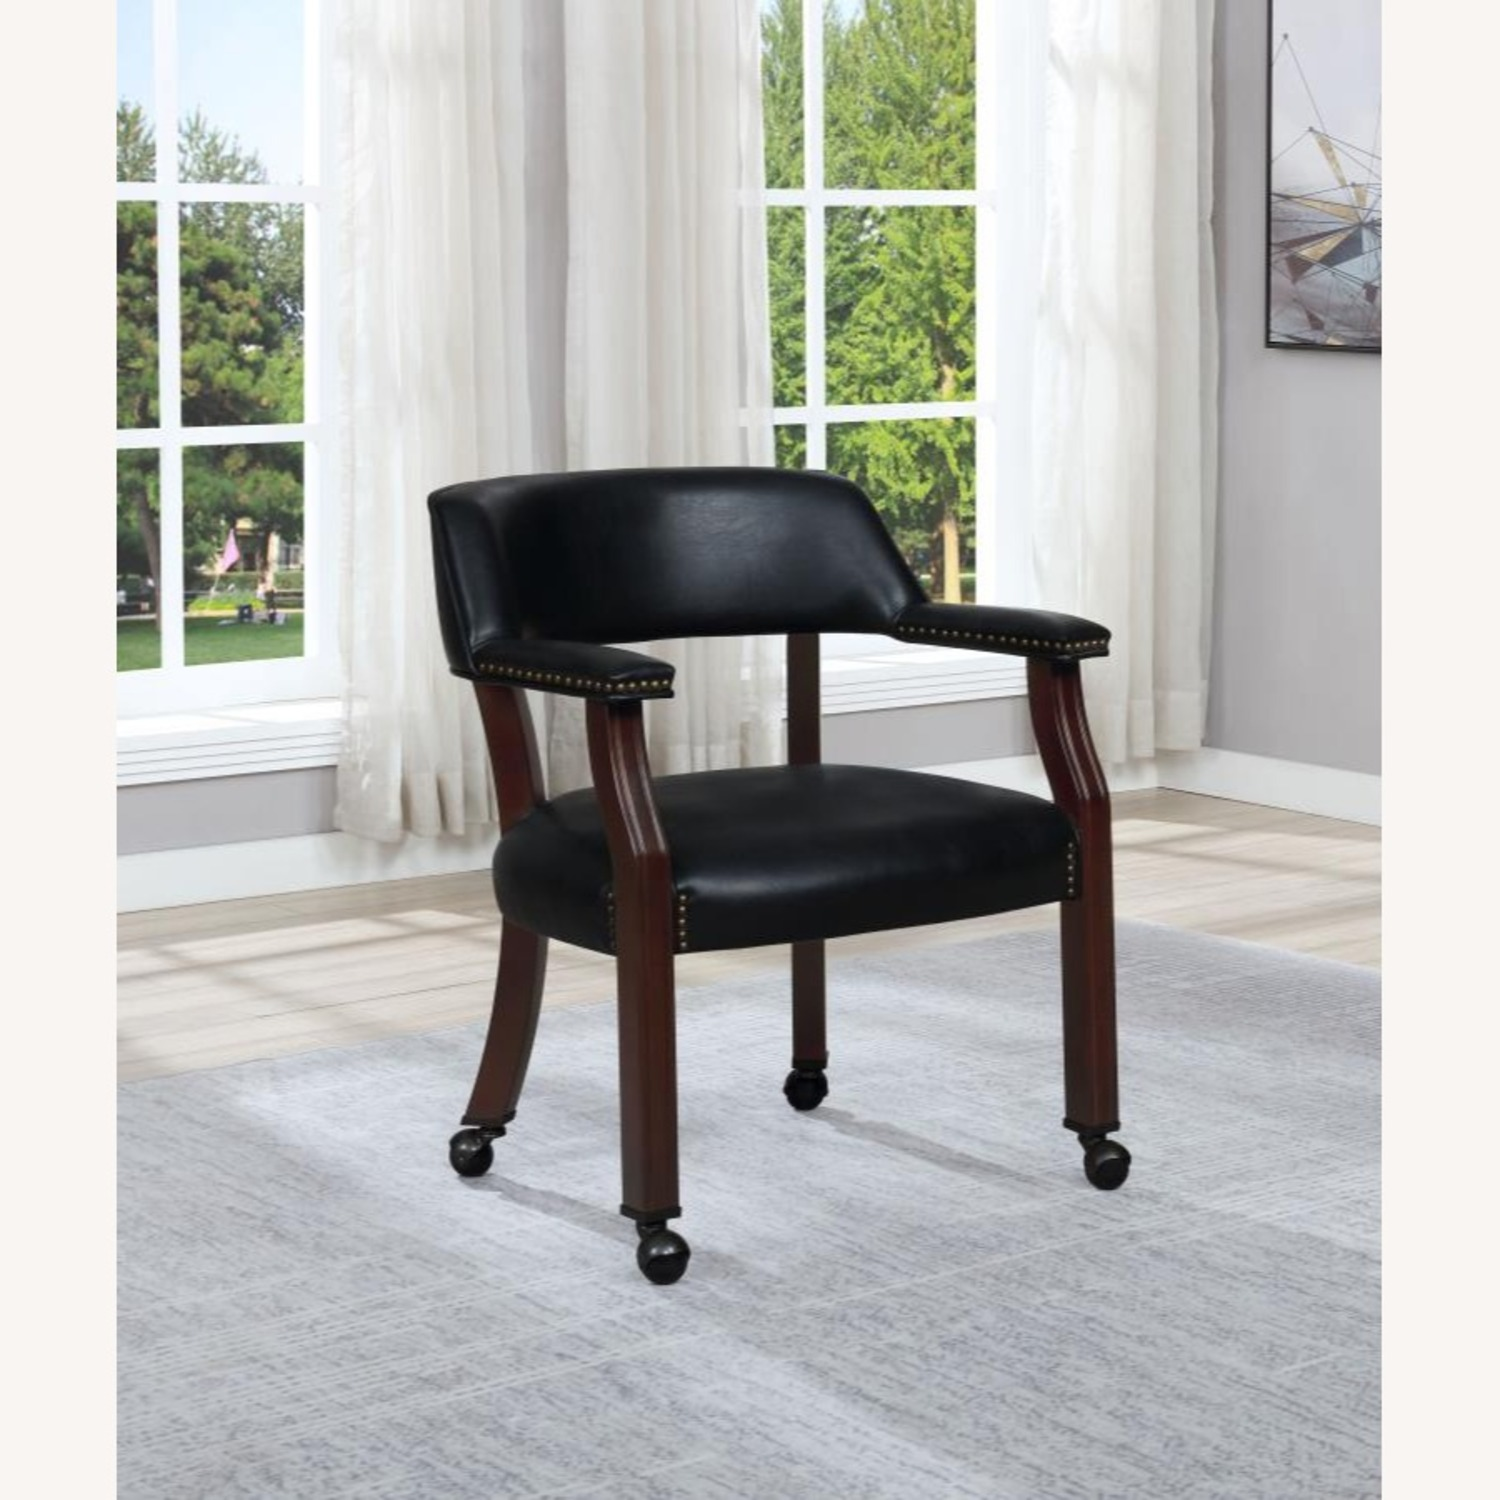 Guest Chair In Black Leatherette Upholstery - image-2